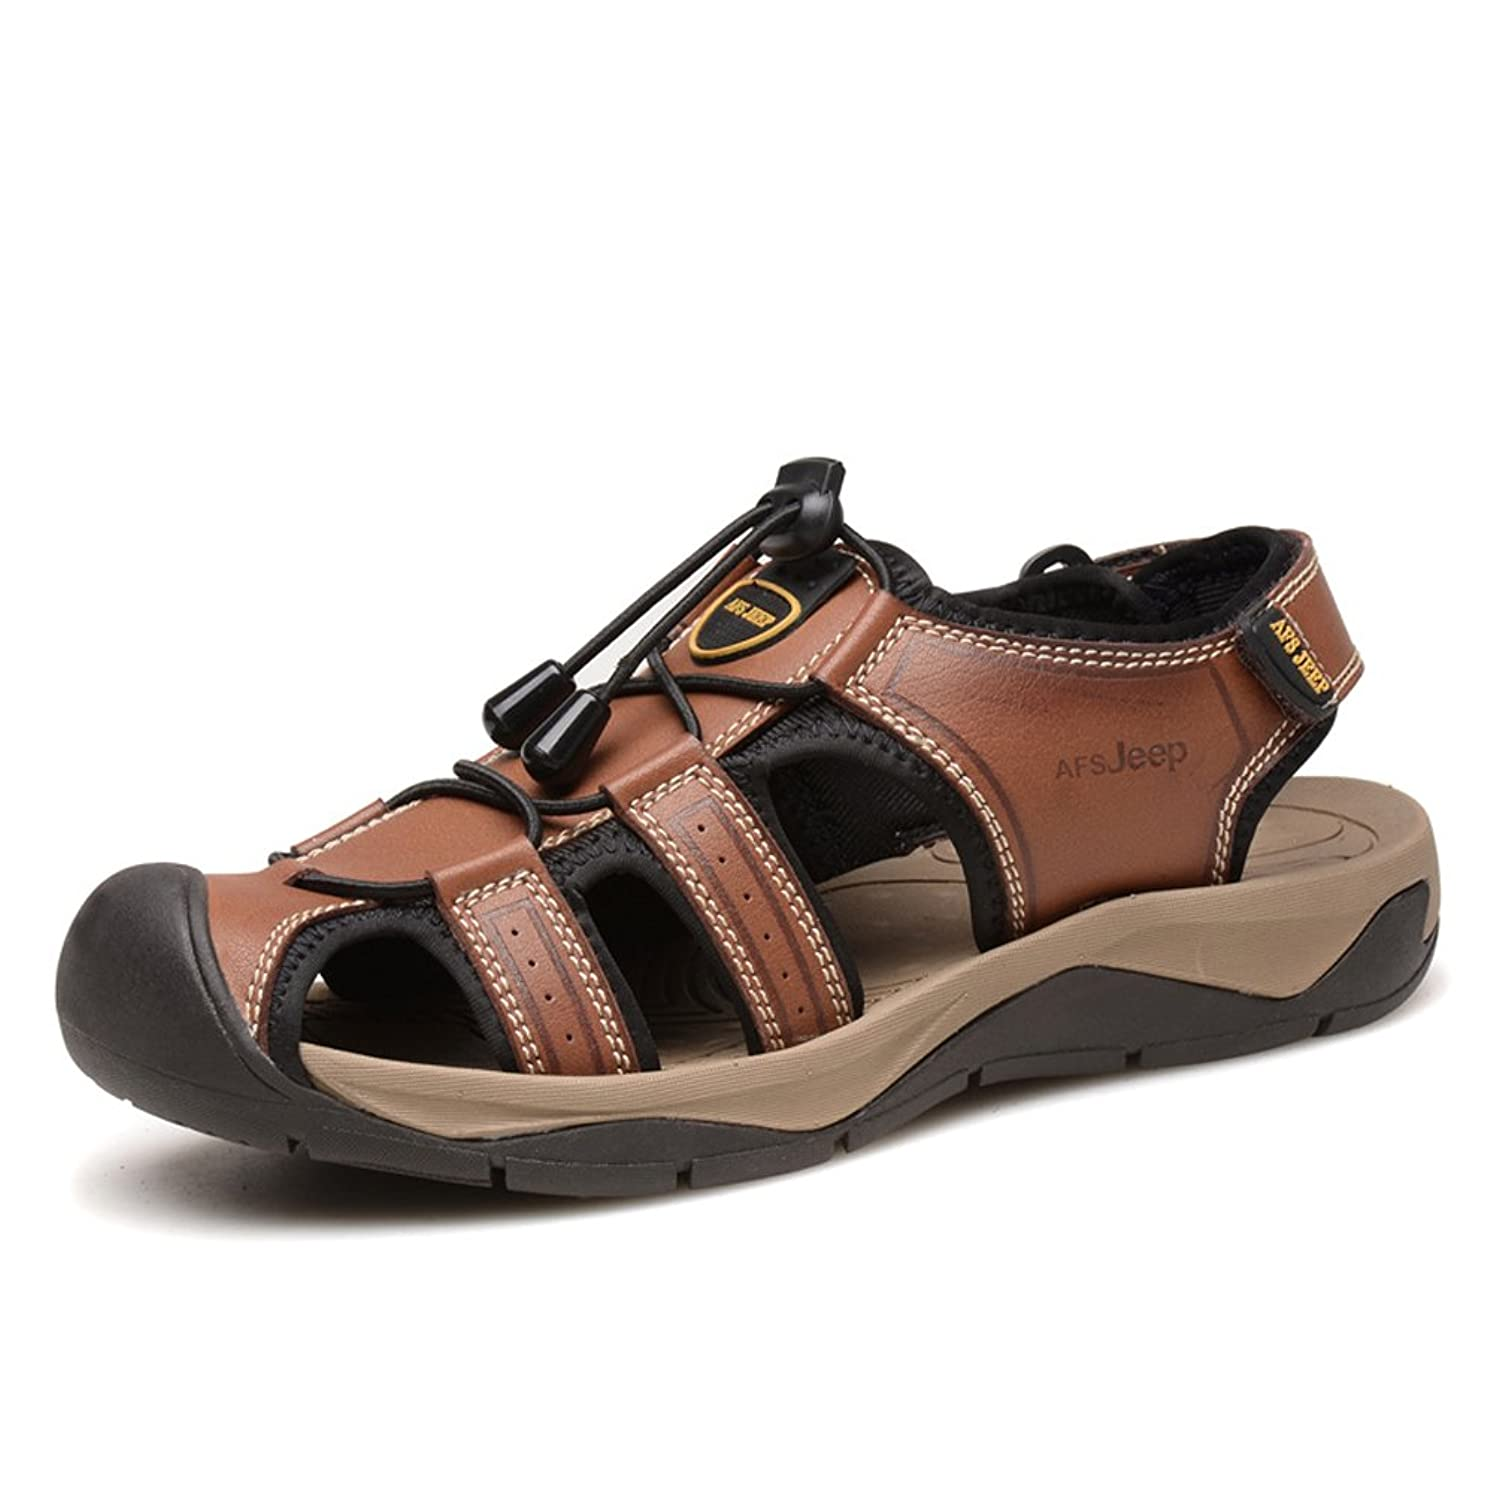 AFS JEEP Men's Strap Sport Sandals Close Toe Beach Athletic Boating Shoes